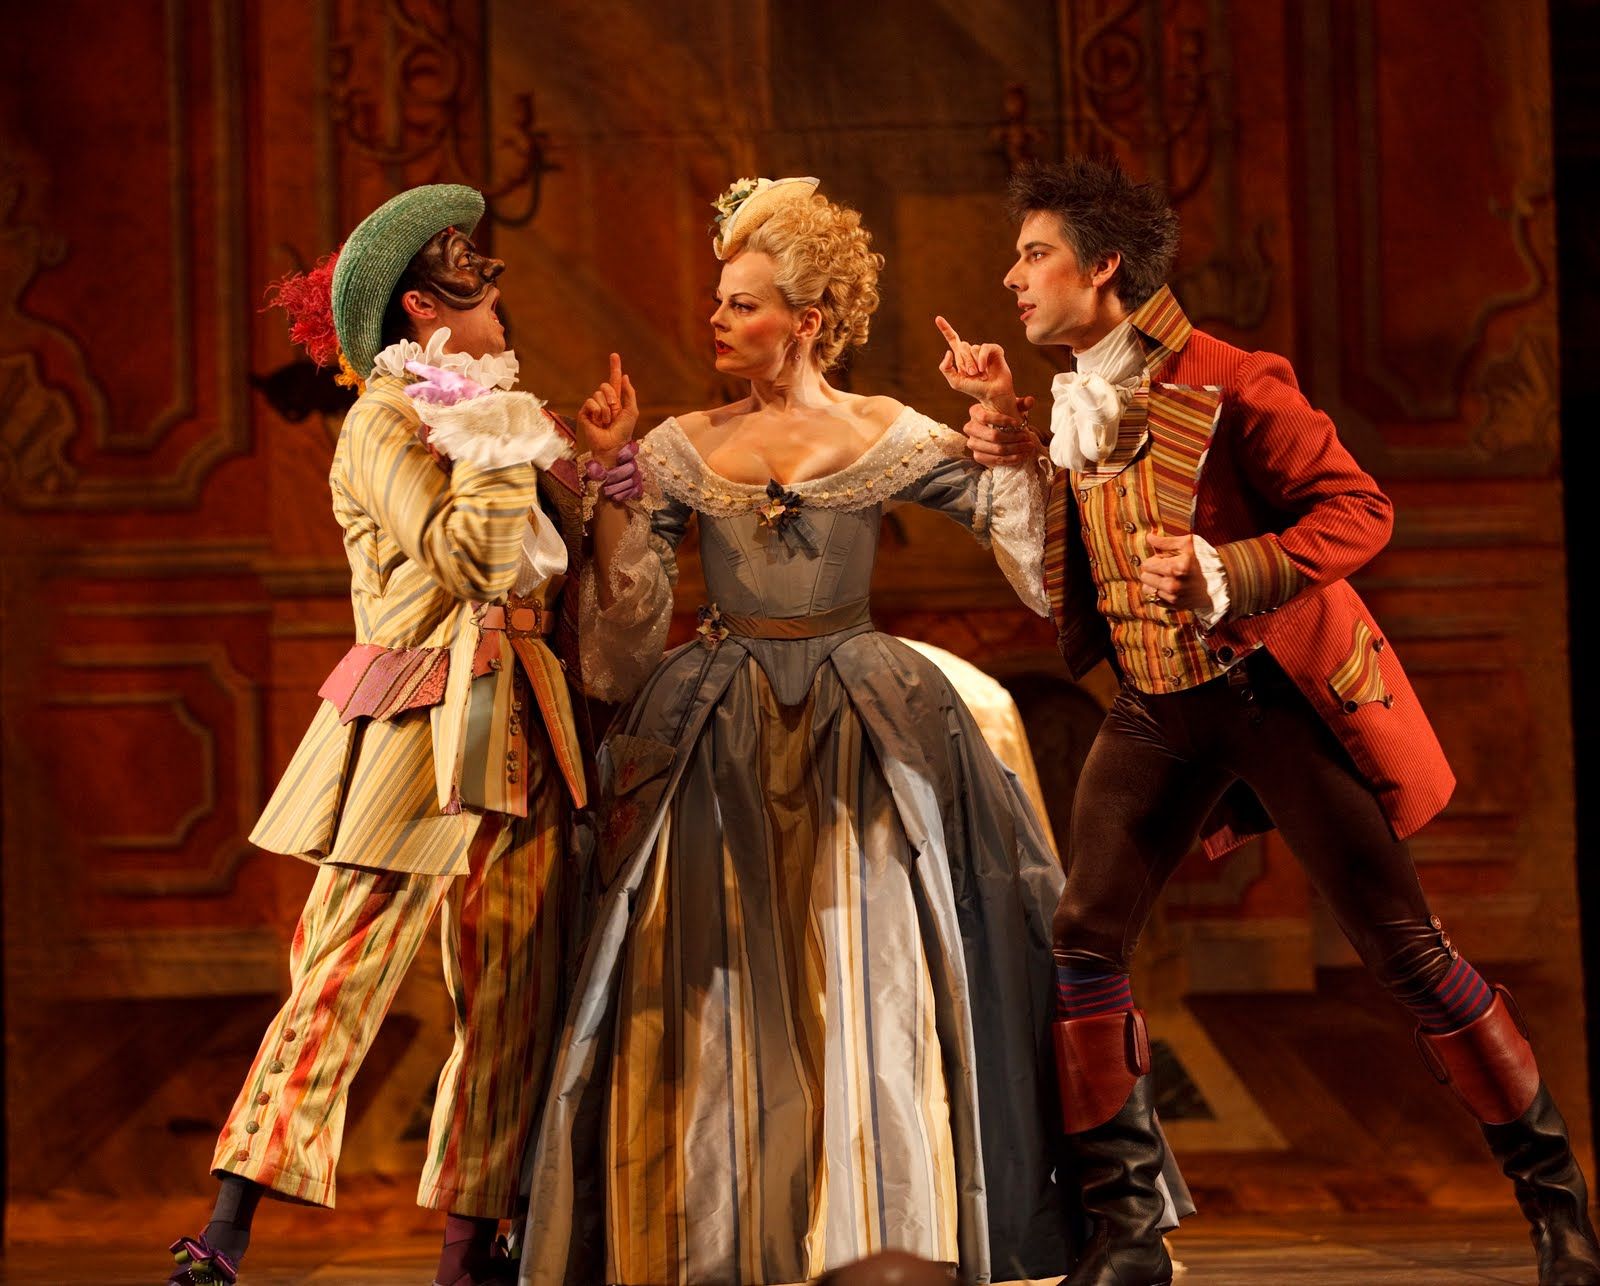 Fashion is My Muse: Opera Atelier and the Marriage of Figaro